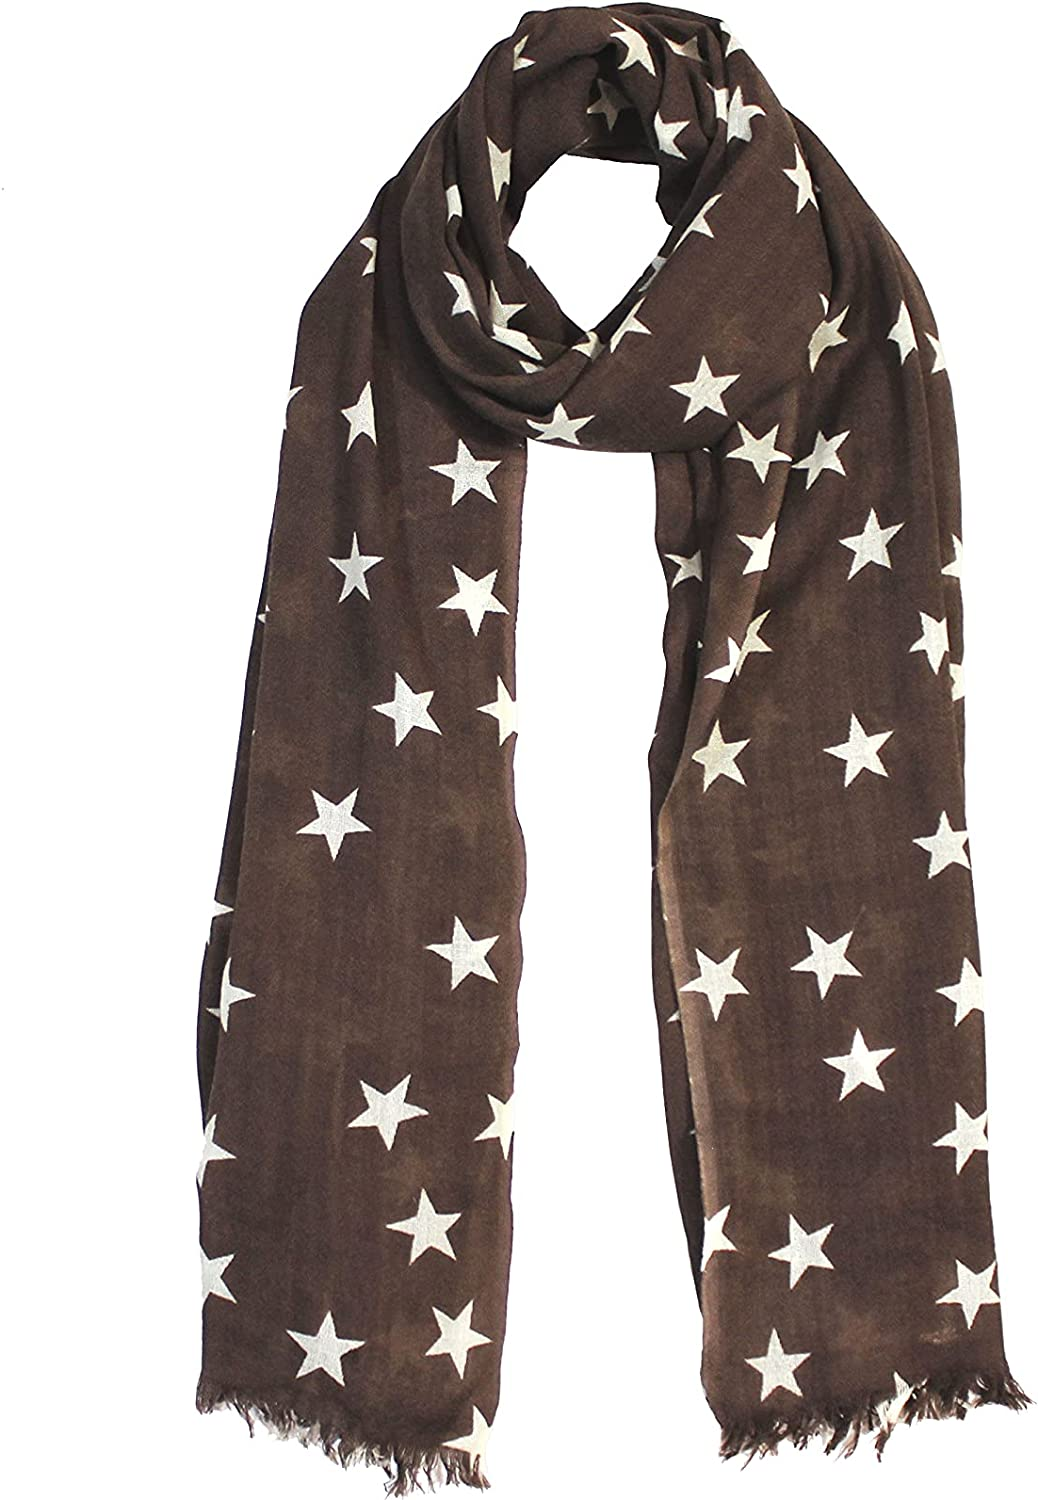 MINI APPARELS Brown Color White Star Print Woolen Lightweight Scarf for Women